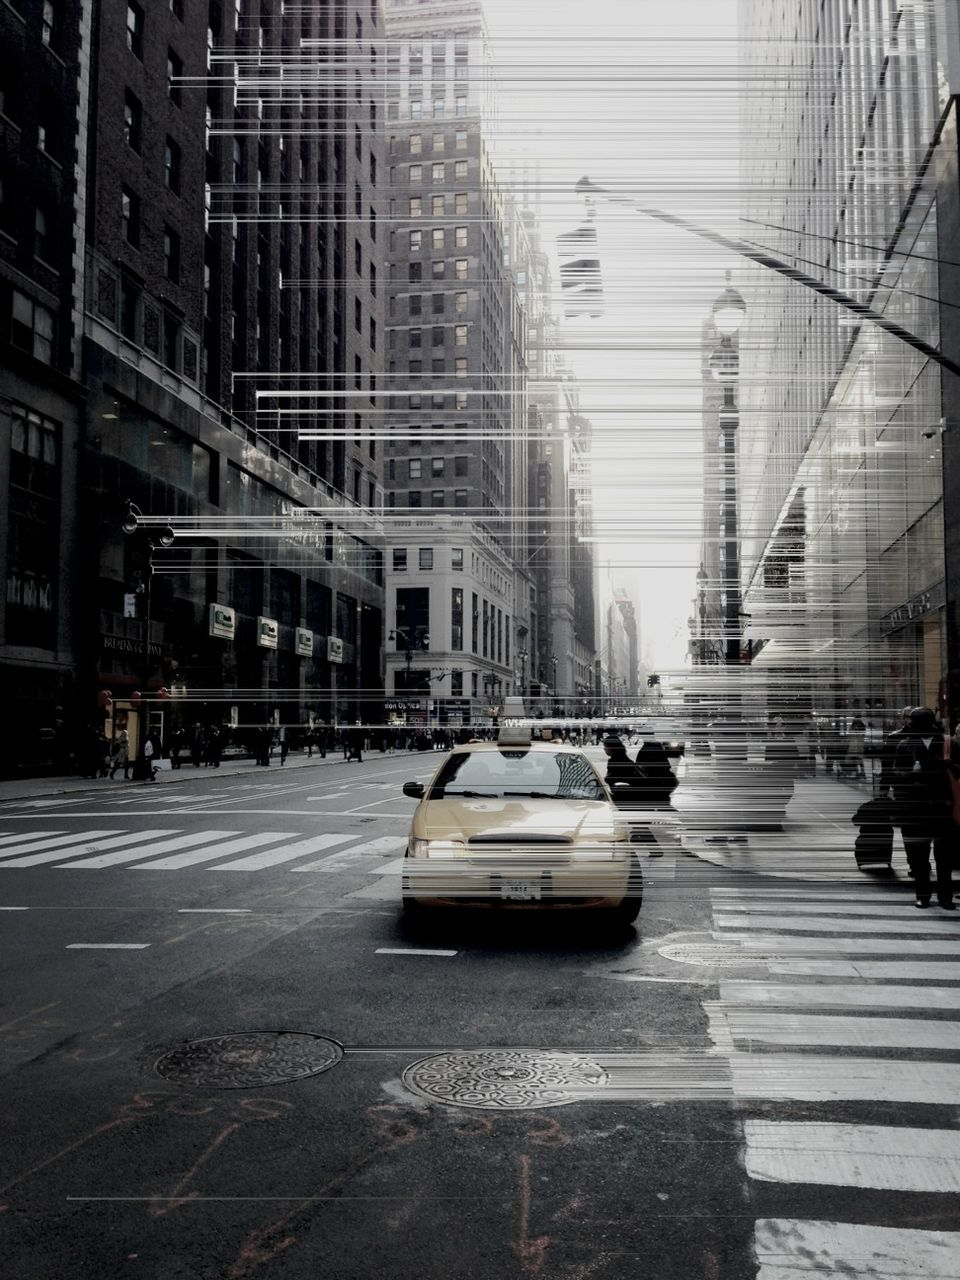 car, architecture, city, building exterior, transportation, built structure, land vehicle, street, mode of transport, road, yellow taxi, city life, skyscraper, outdoors, city street, day, travel destinations, no people, cityscape